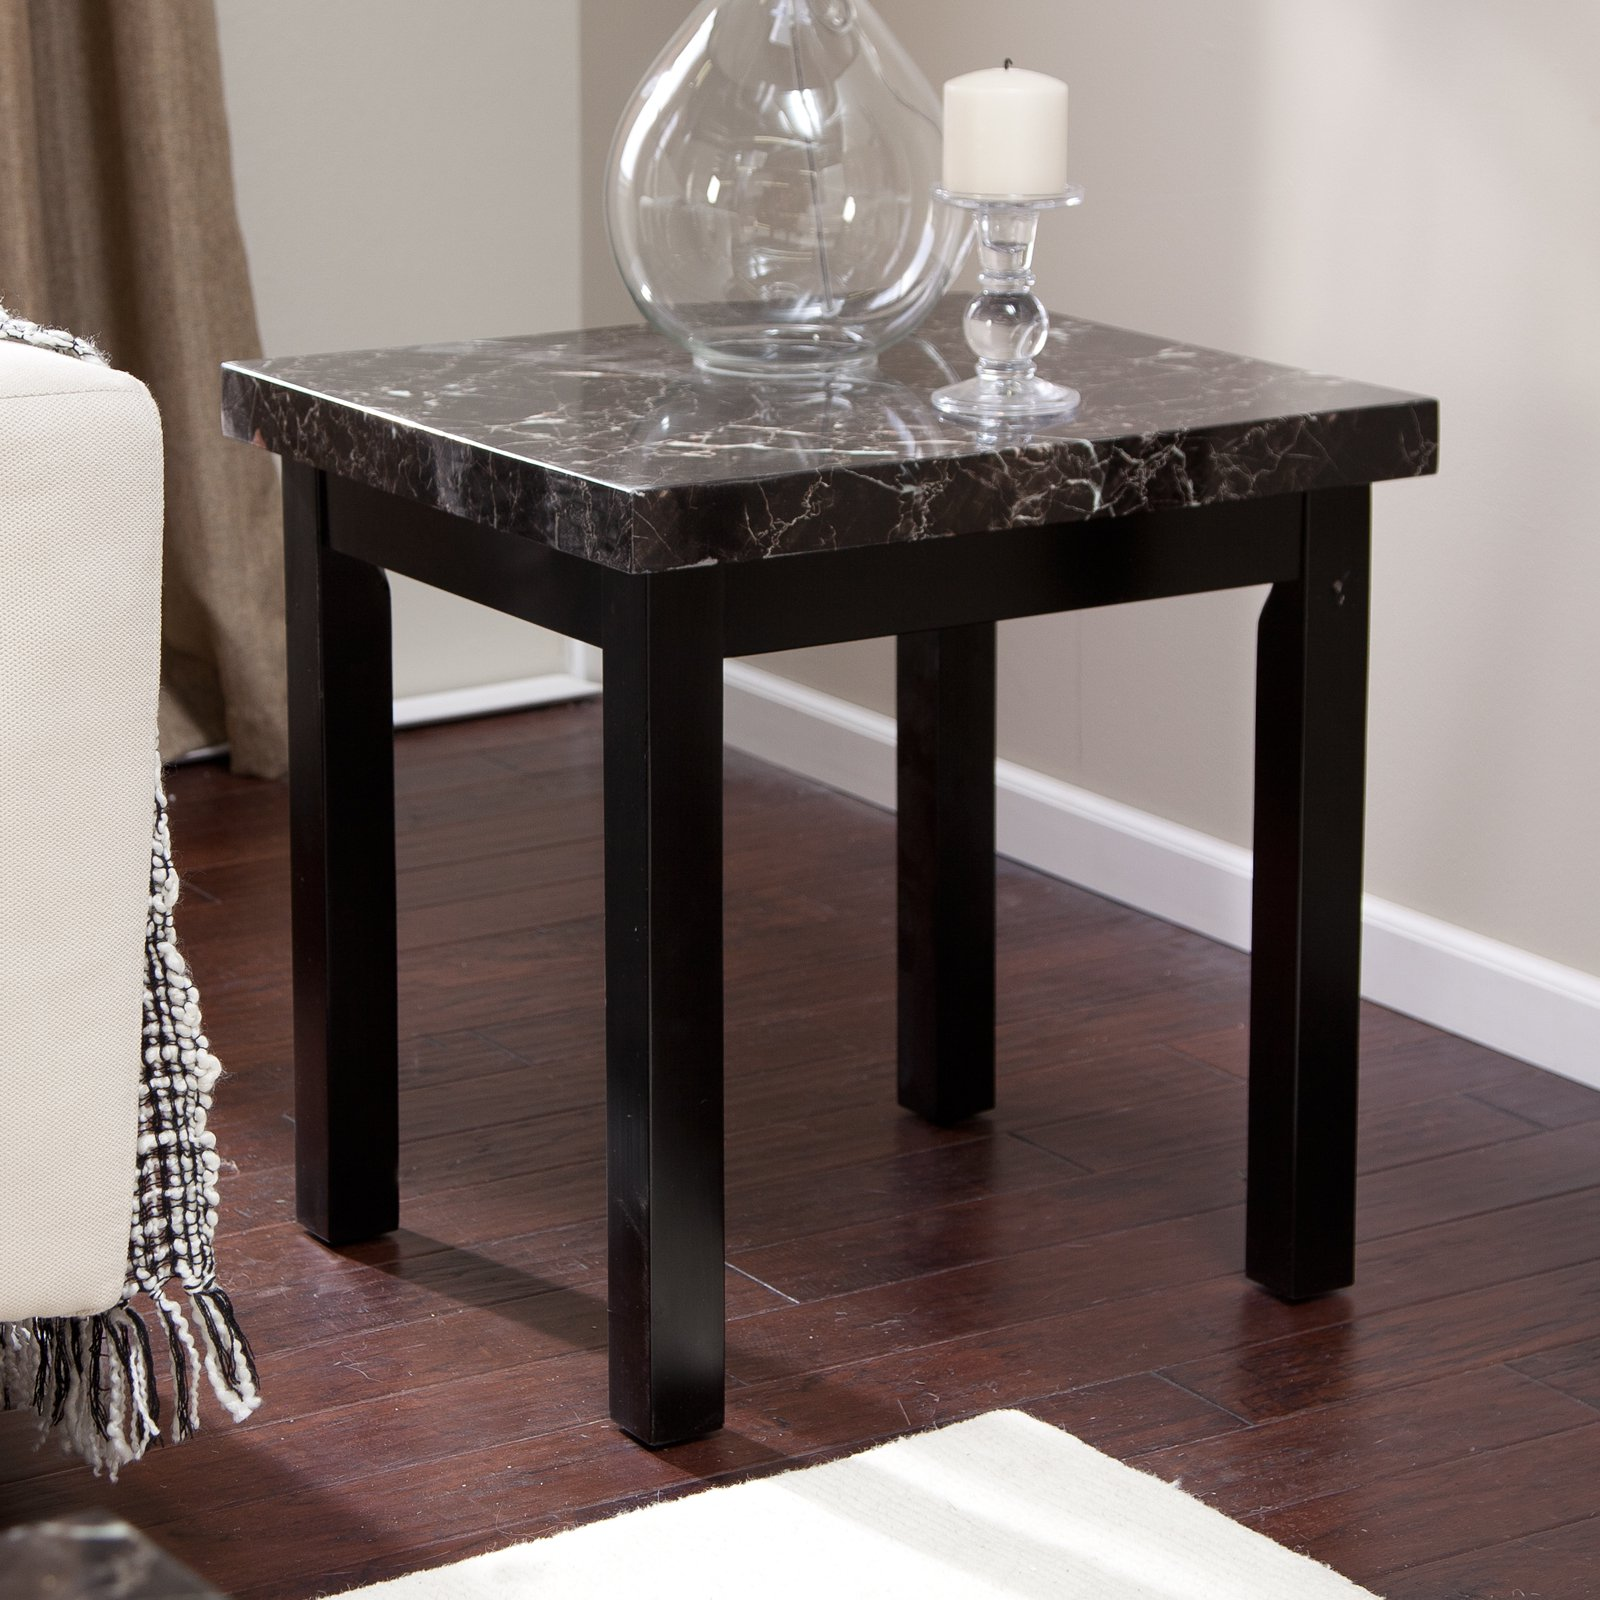 galassia faux marble end table tables home goods small top accent threshold cocktail decor pier imports dining ethan allen coffee and tray cast aluminum patio furniture clearance